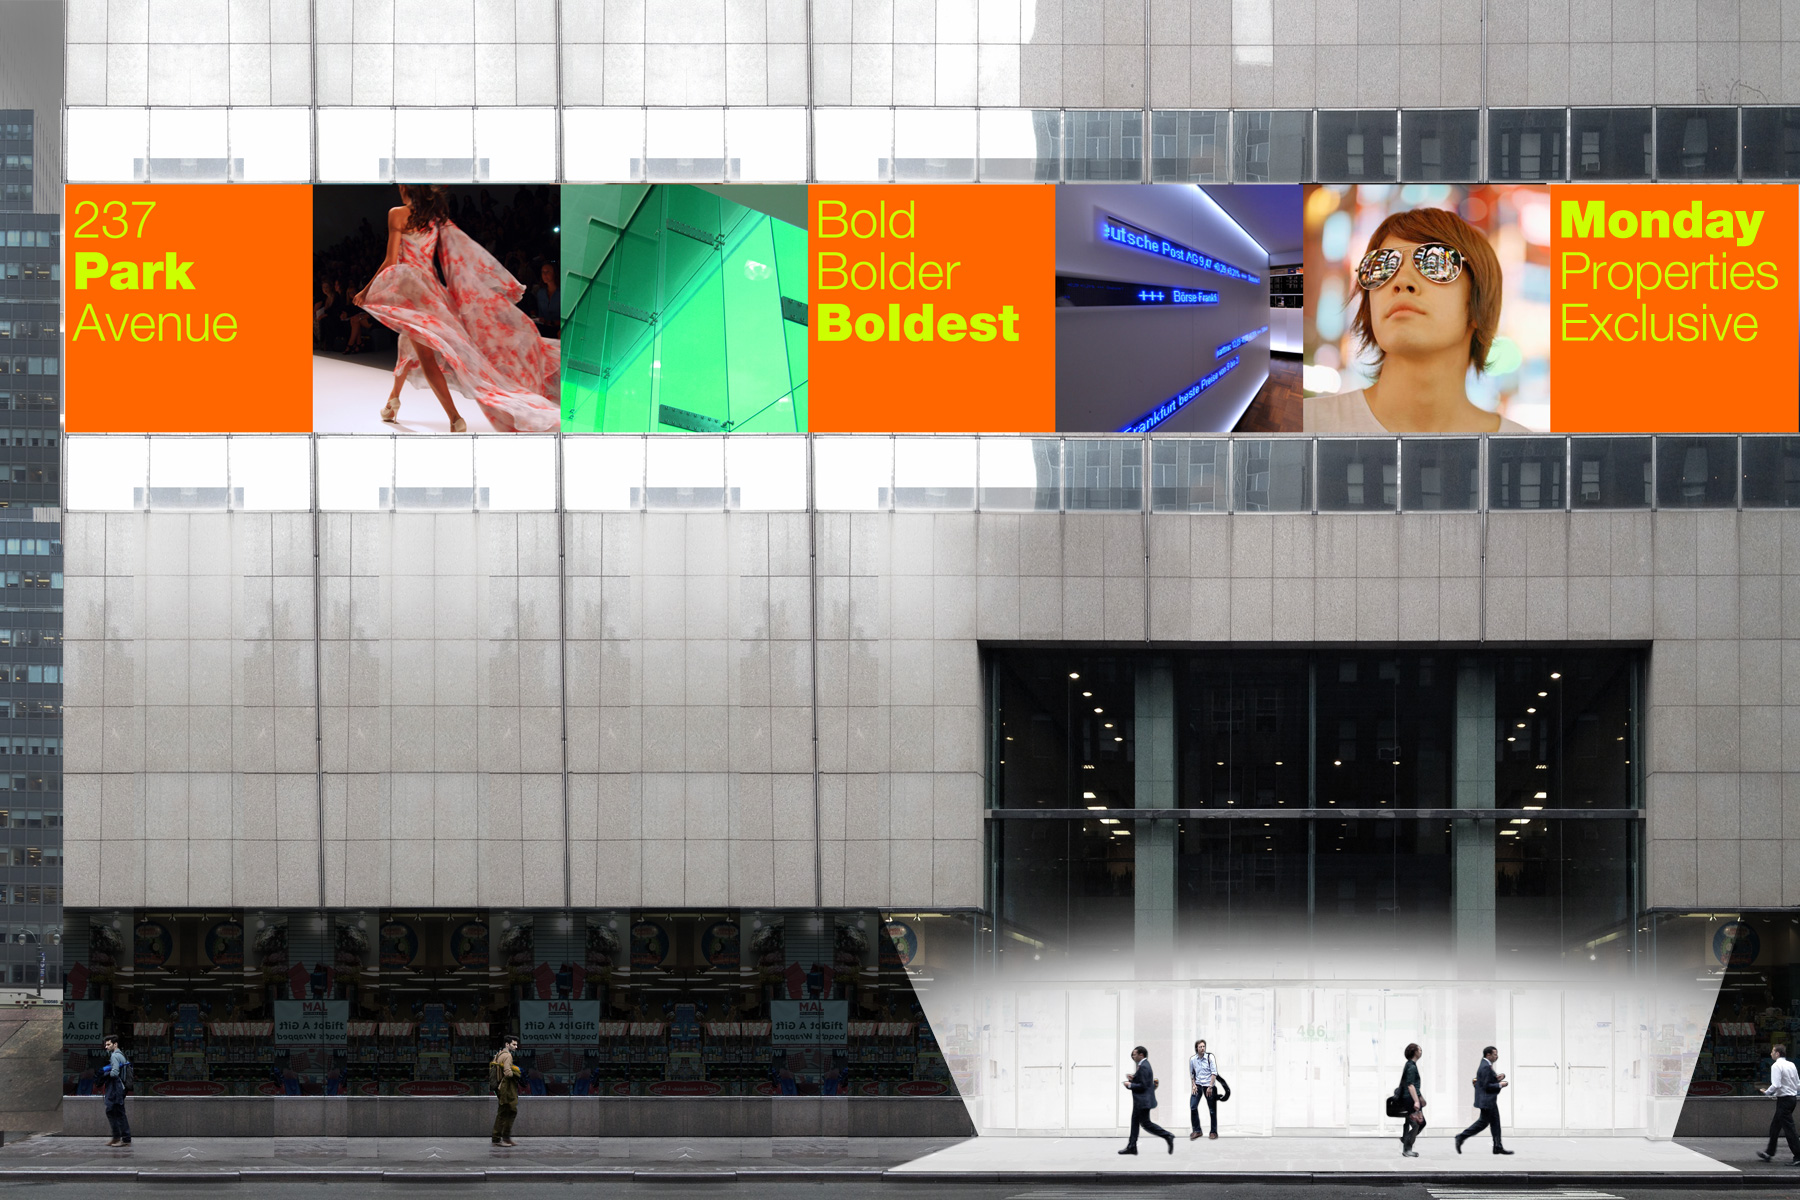 237-park-ave-outdoor-banner-1800x1200